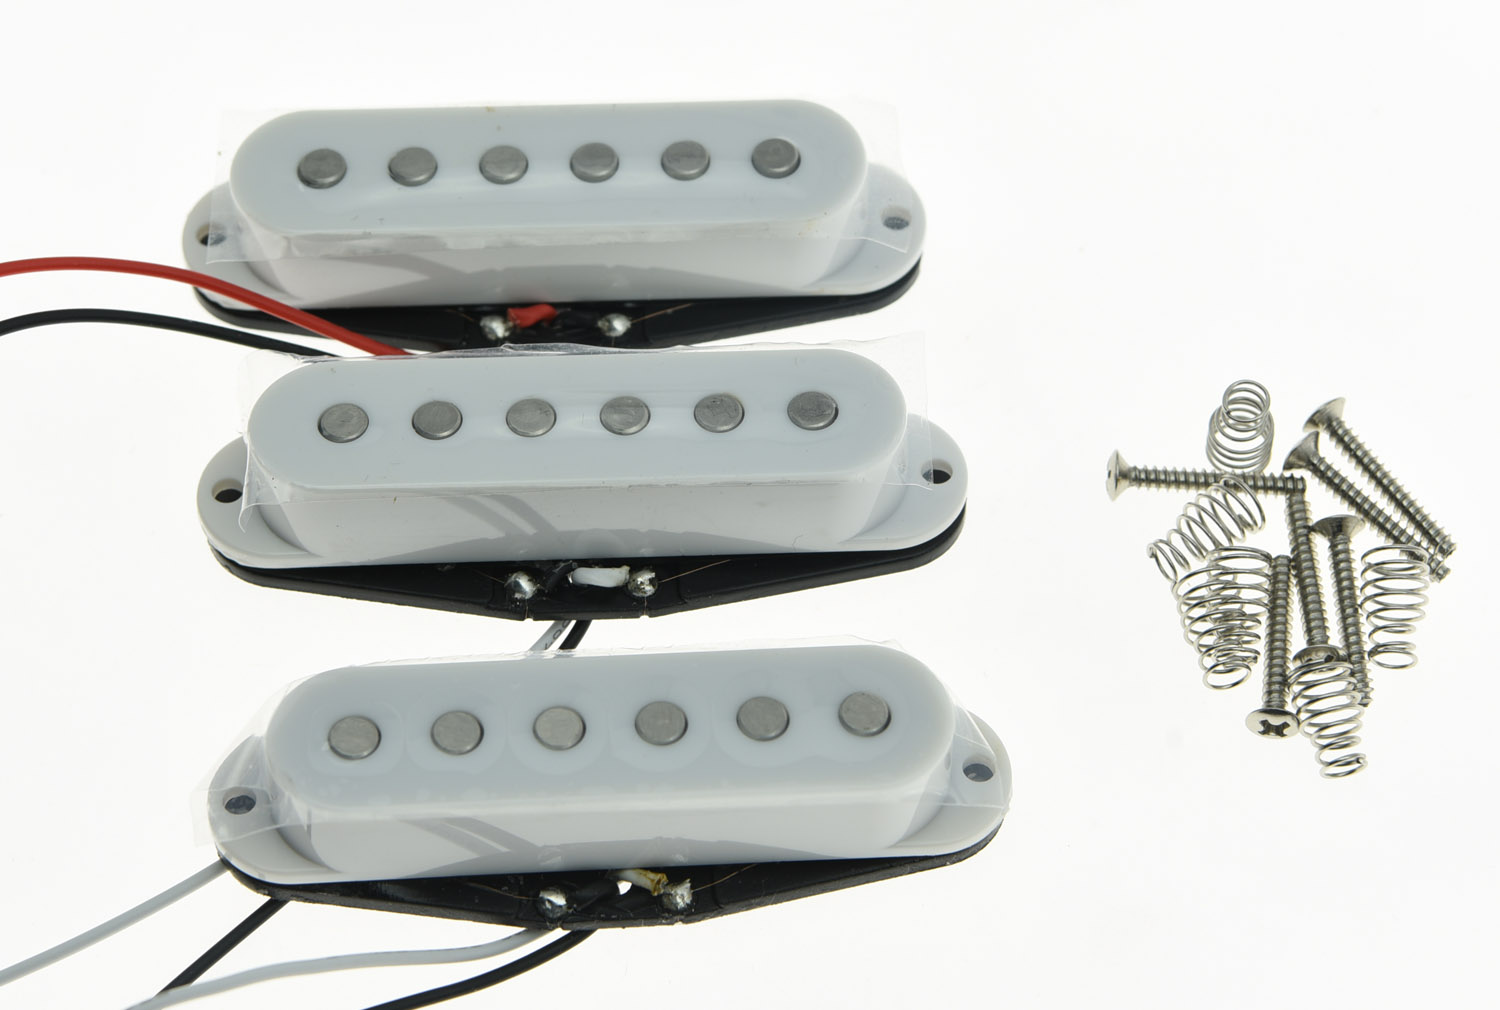 3x N/M/B White Alnico 5 Single Coil Pickups High Output Sound Strat SSS Pickup vintage voice single coil pickups fits for stratocaster ceramic bobbin alnico single coil guitar pickup staggered pole top